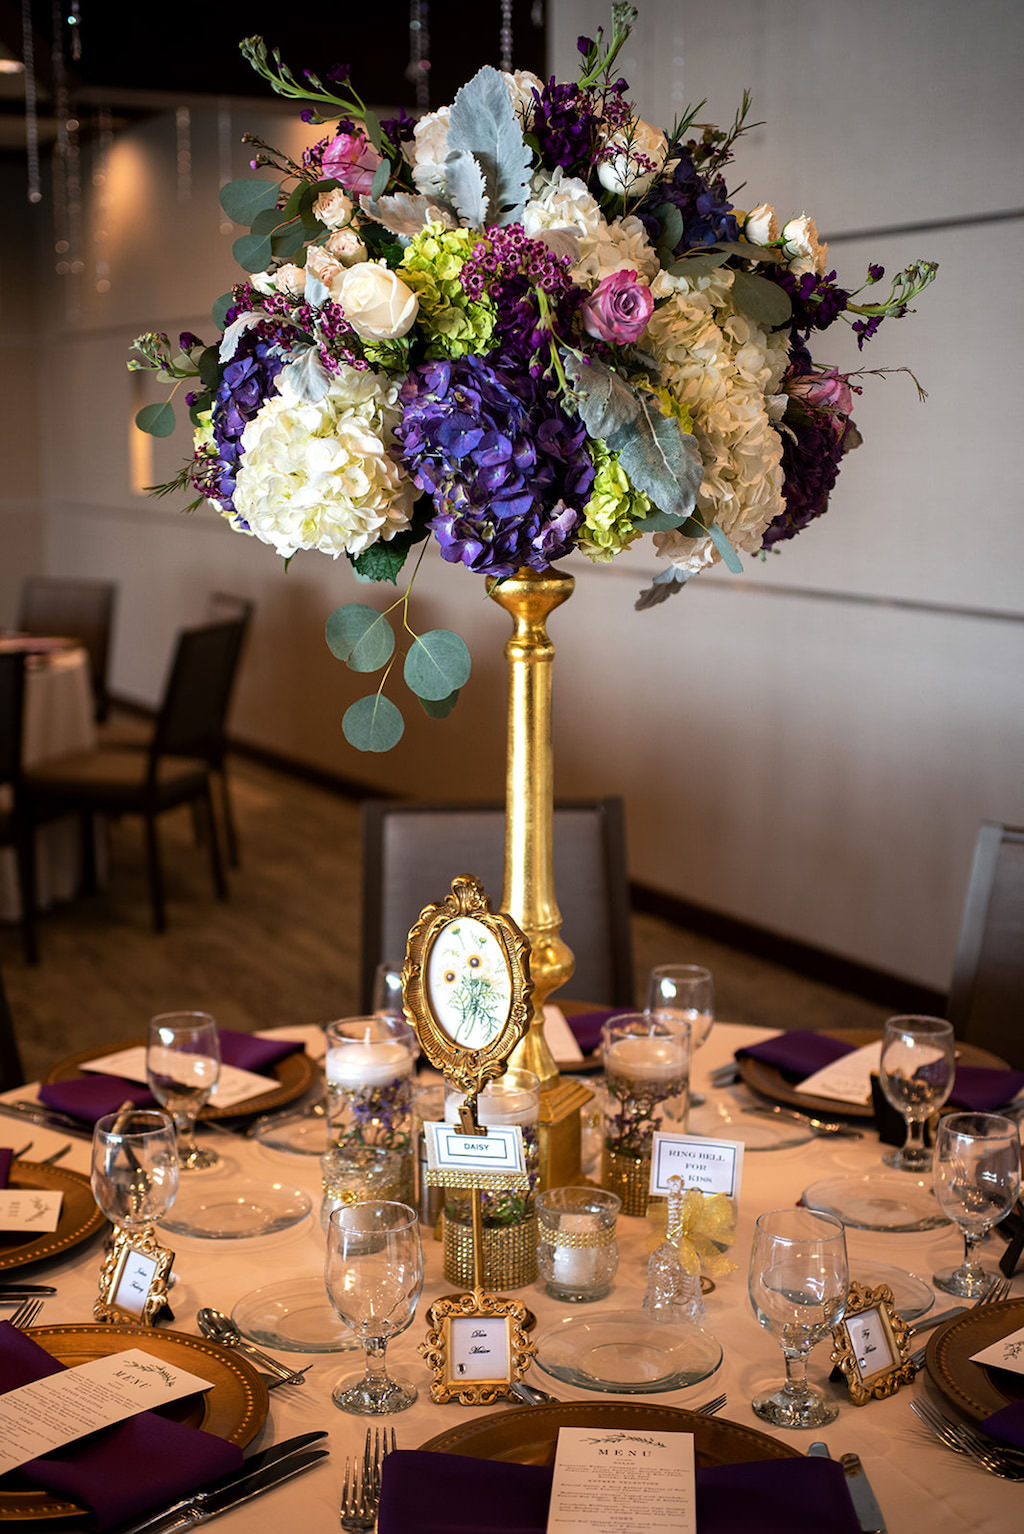 Elegant, Classic Vintage Garden Inspired Wedding Reception Decor, Tall Centerpieces, Gold Candelabra, Lilac, Purple, Green Hydrangeas, Blush Pink and Greenery Floral Arrangement, White Table Linen, Purple Napkins, Vintage Frame Place Cards | Tampa Wedding Planner Laura Detwiler Events